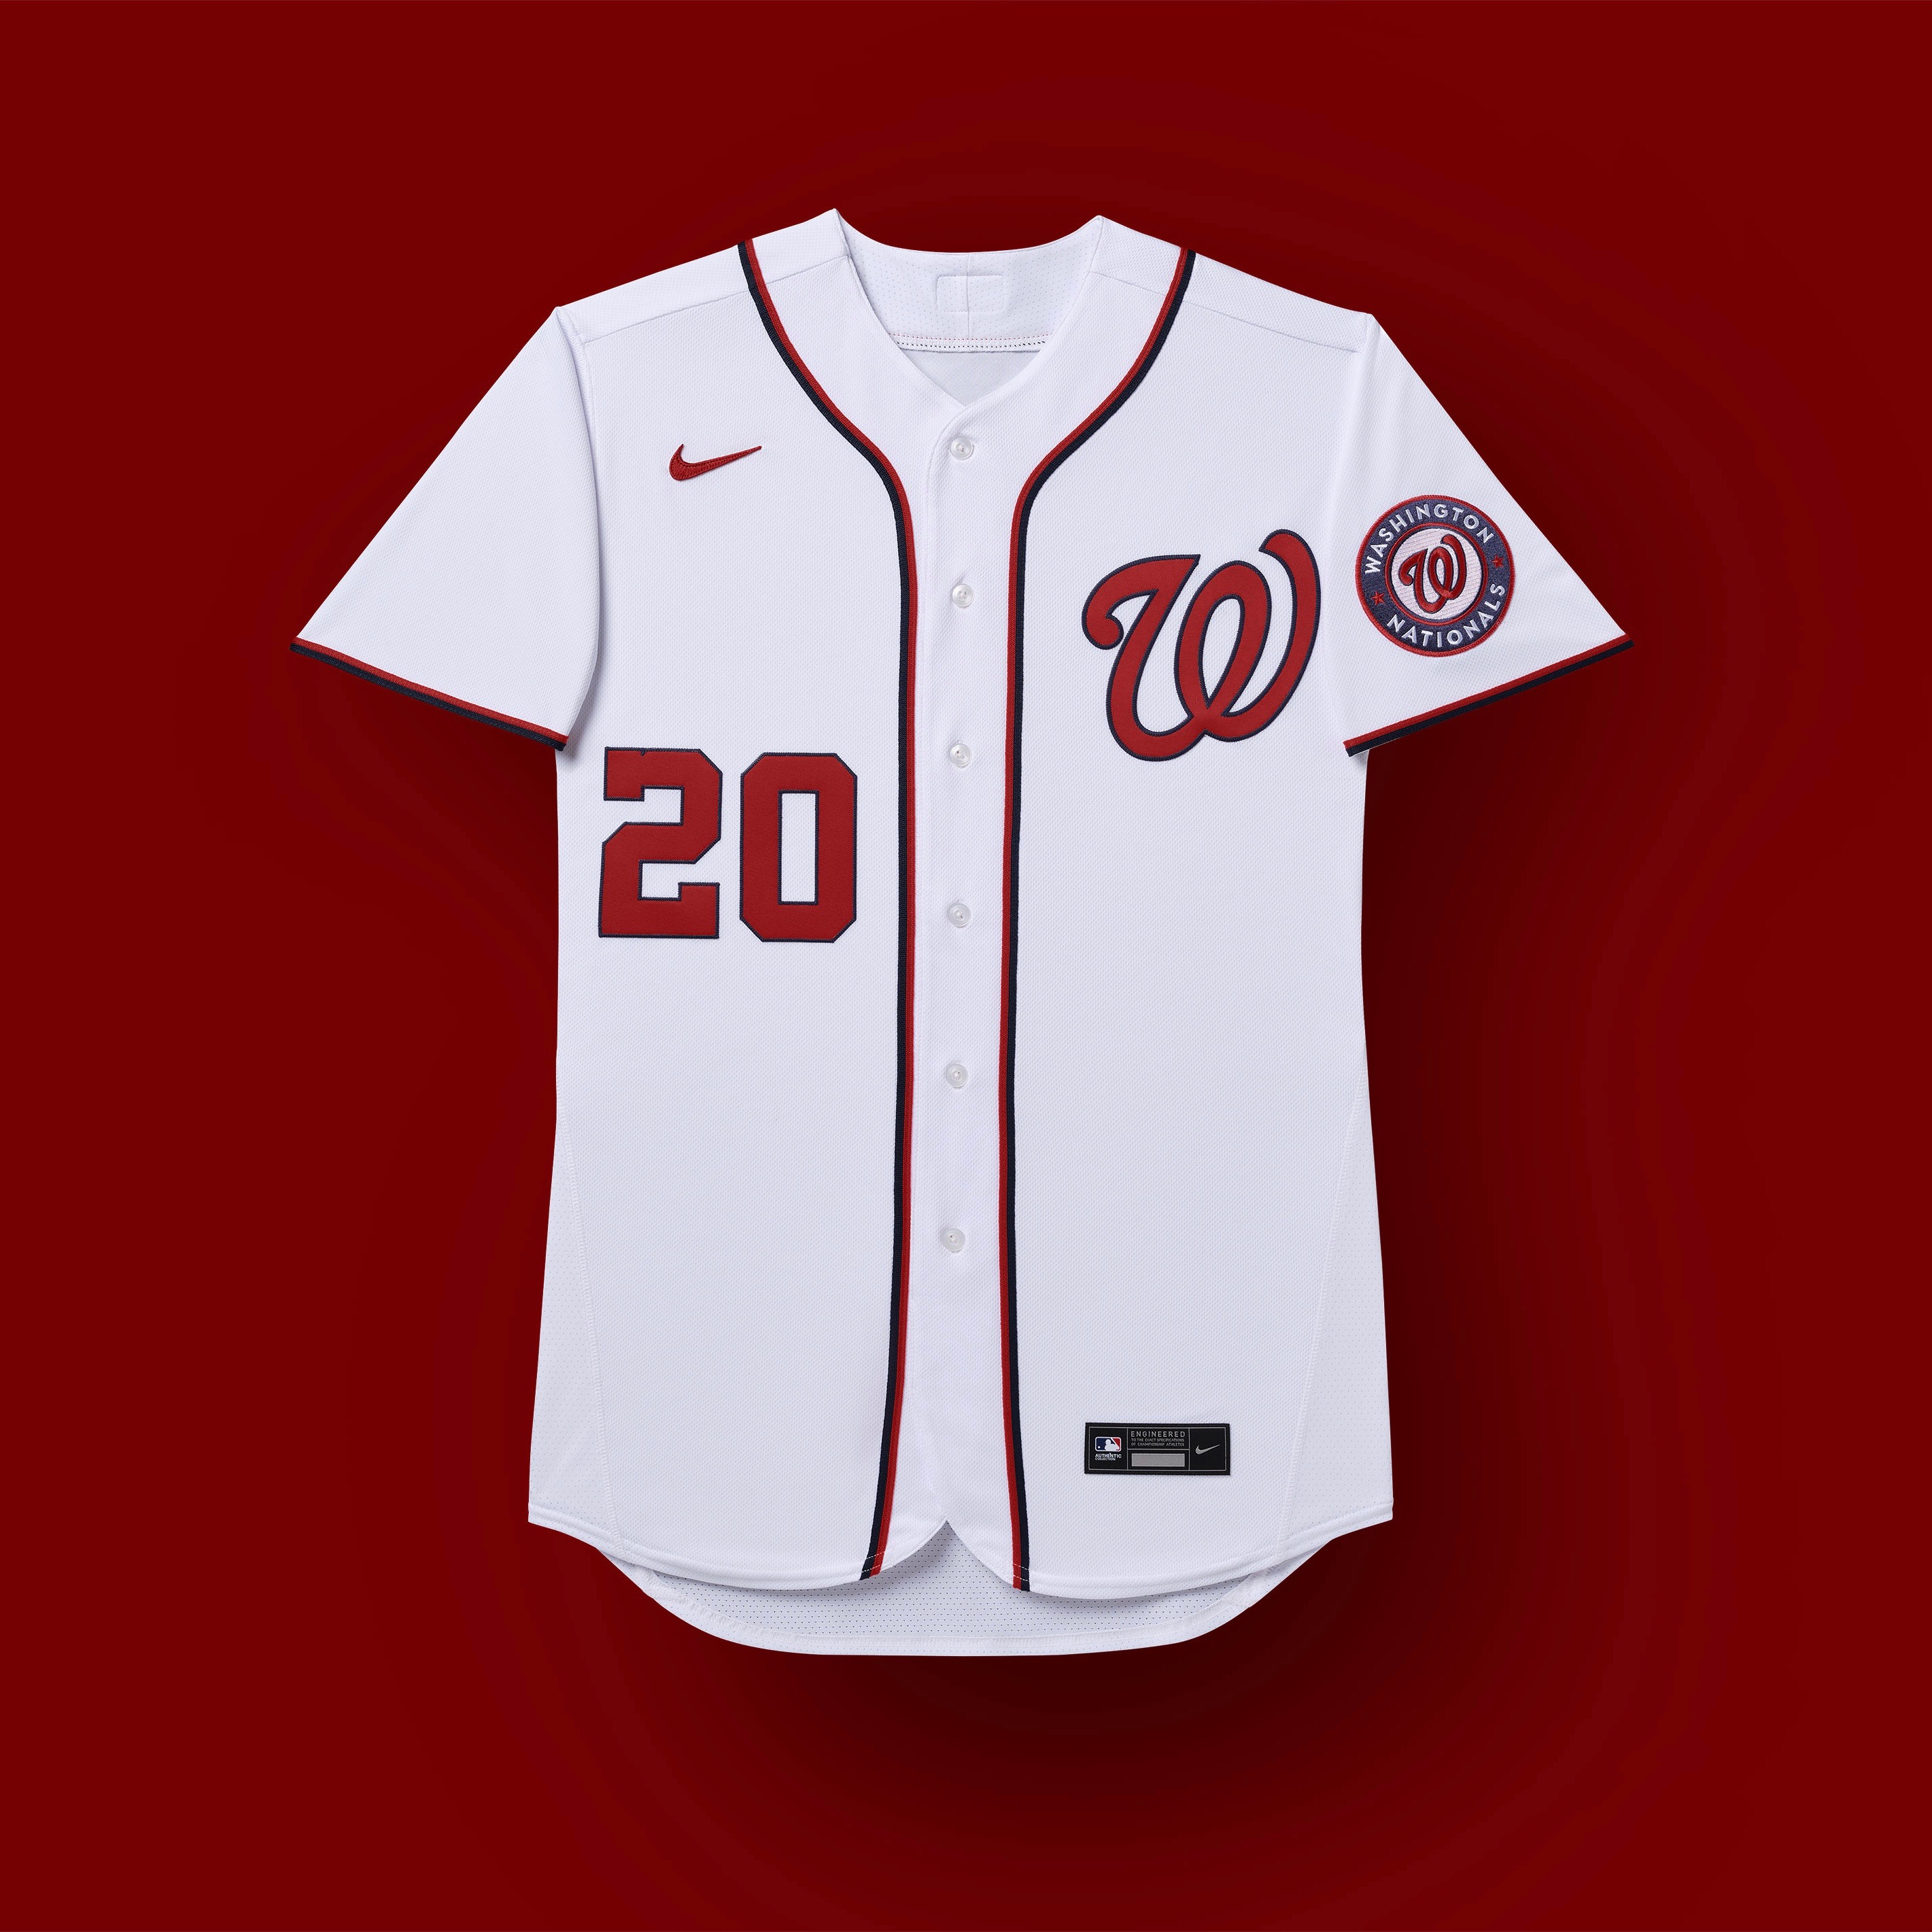 washington nationals 2020 uniforms